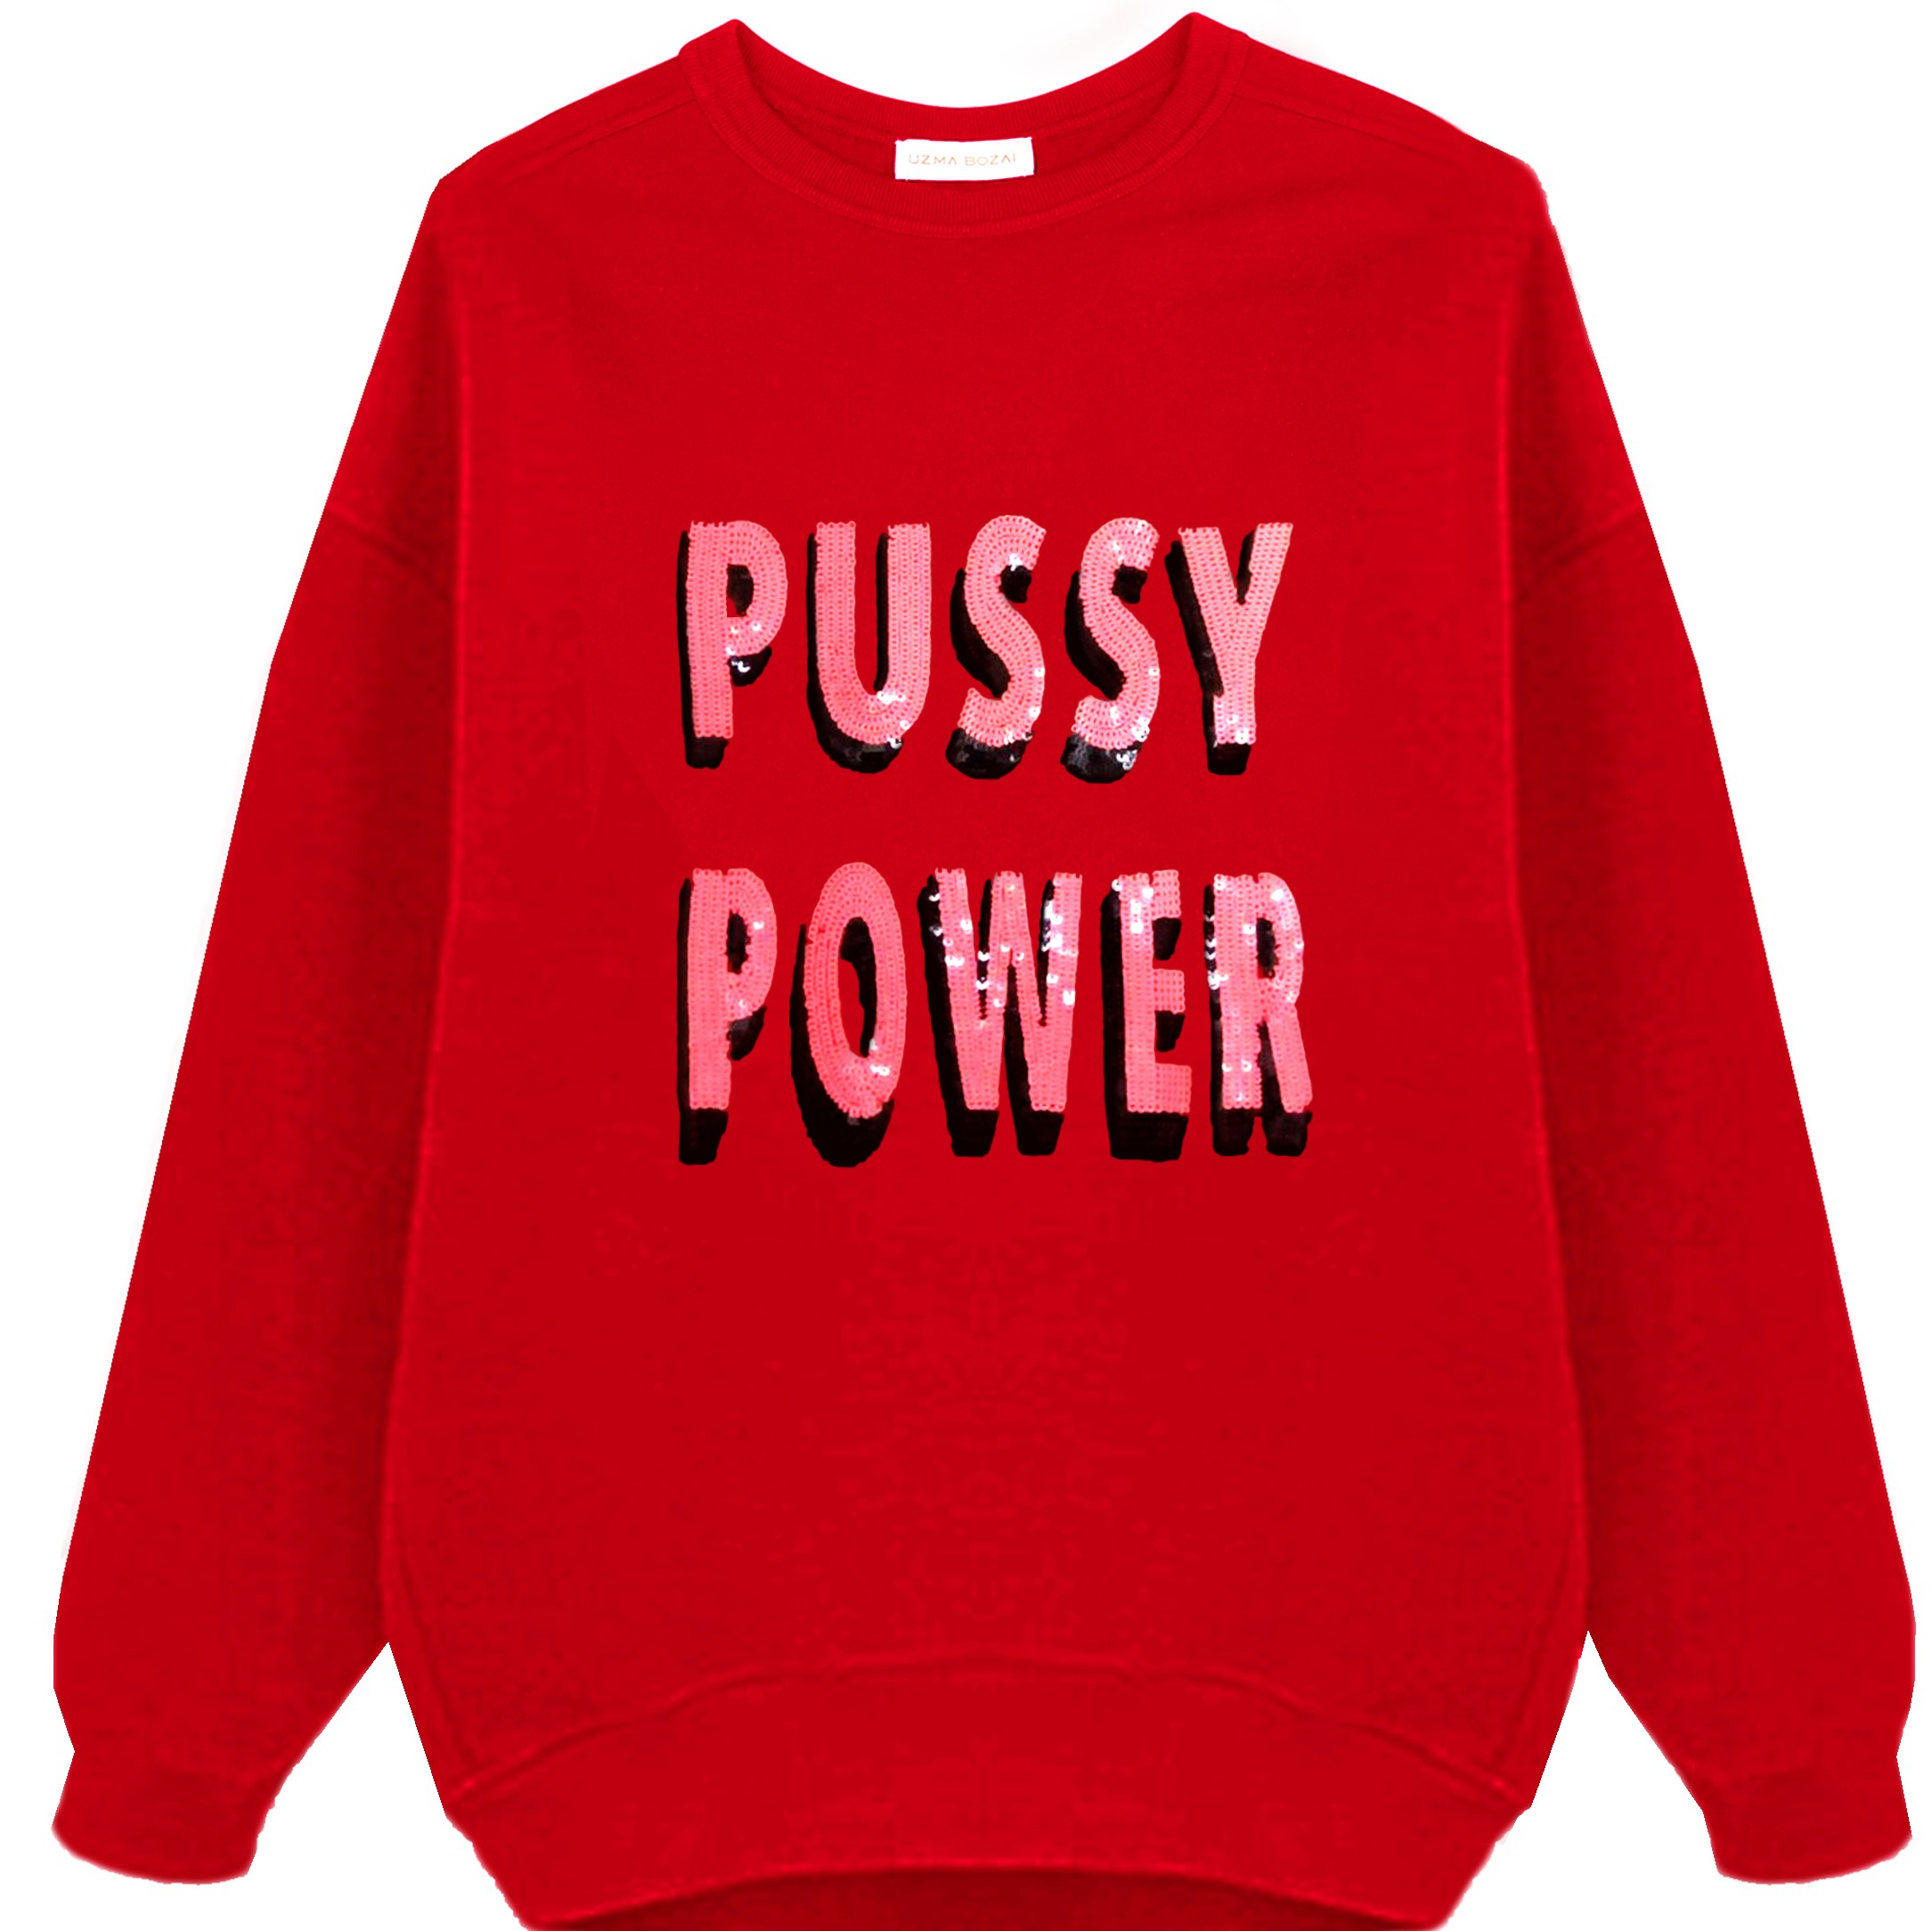 Pussy Power Oversized Sweatshirt